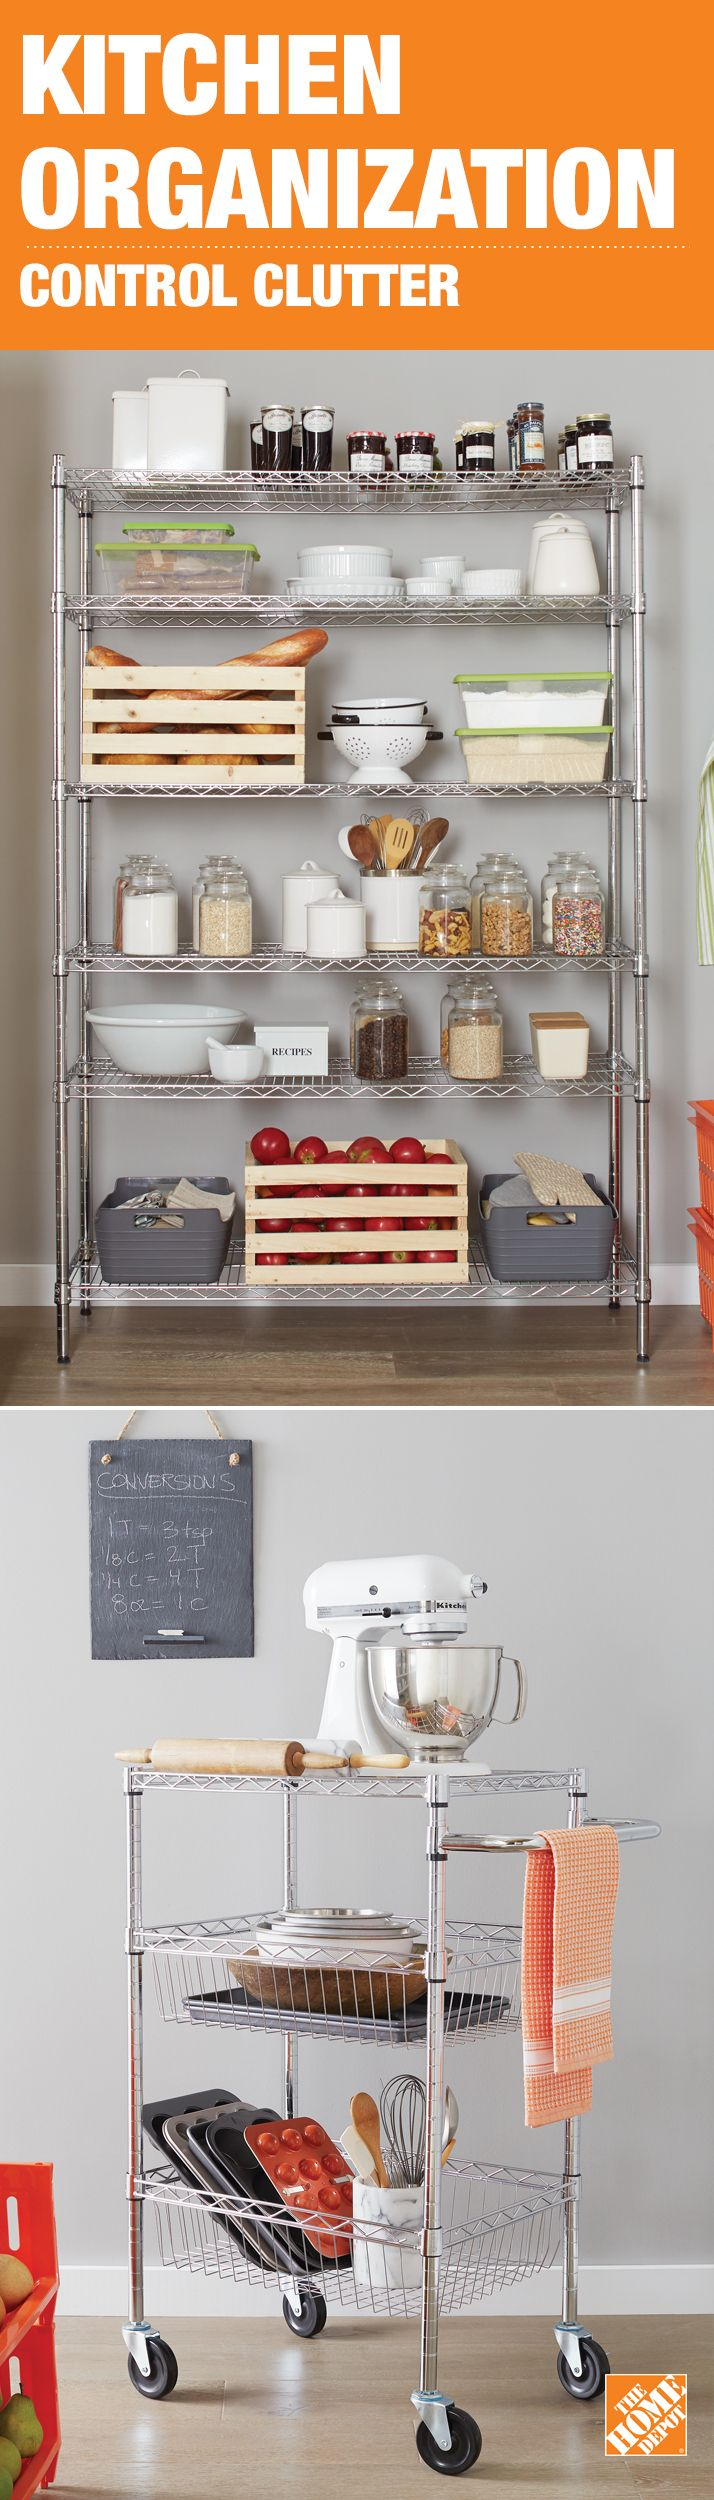 Simple wire shelving can be the perfect storage solution for a small kitchen pantry. Consider shelves on wheels that you can wheel out when in use, and back to the pantry when you're done. Click to shop all our storage solutions for any space at The Home Depot.